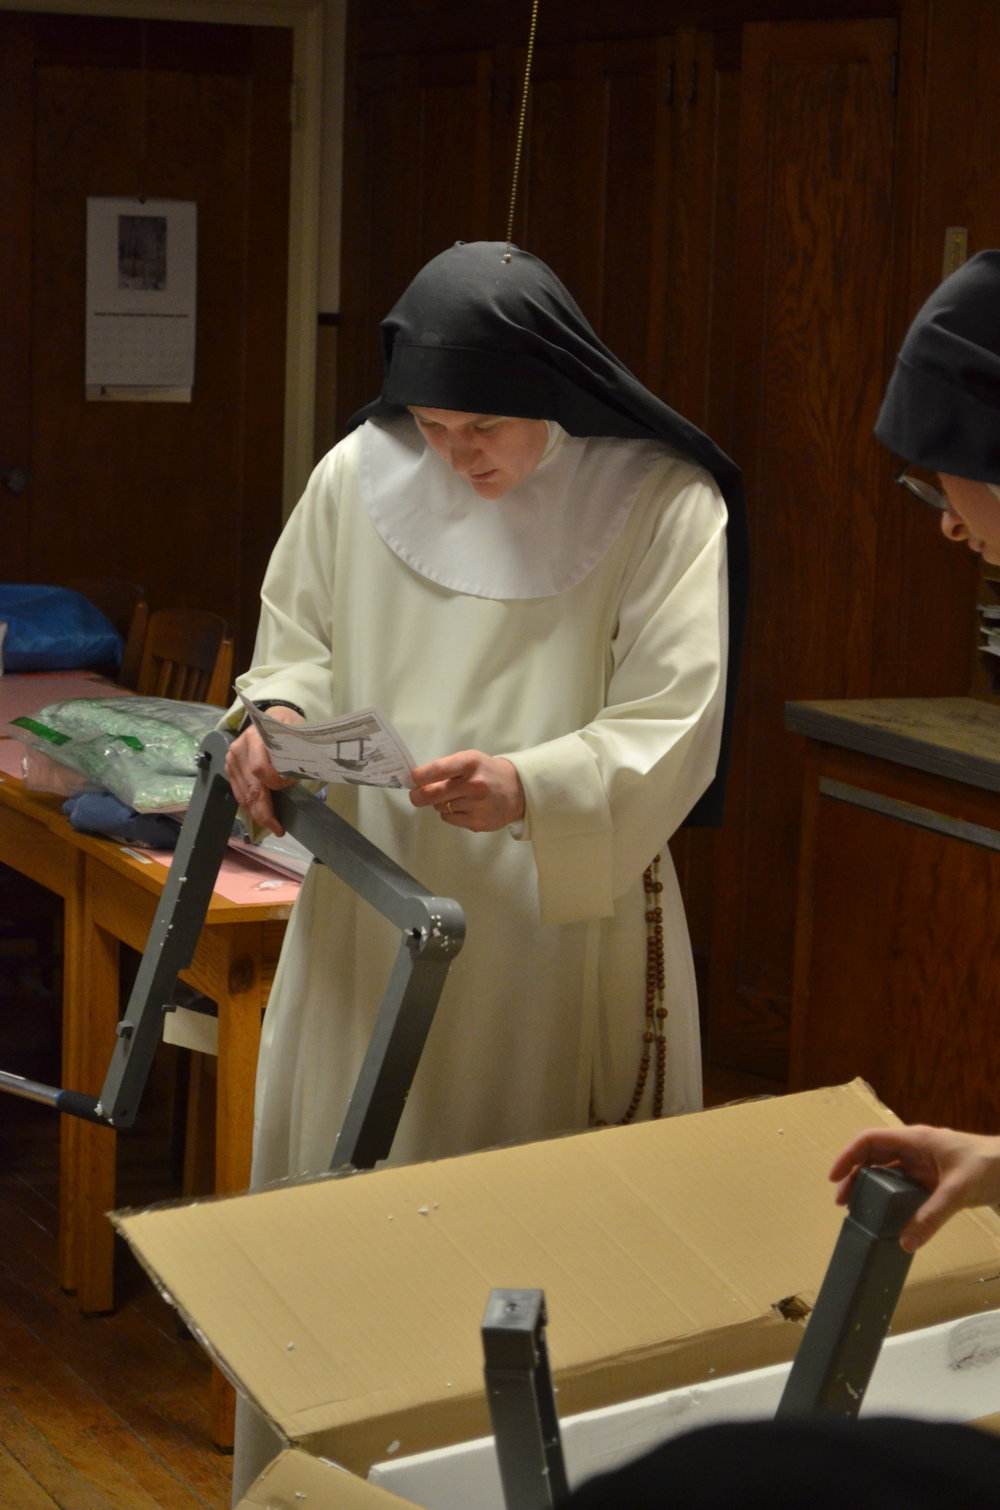 Sr. Mary Magdalene studies the instructions for the cleaning cart